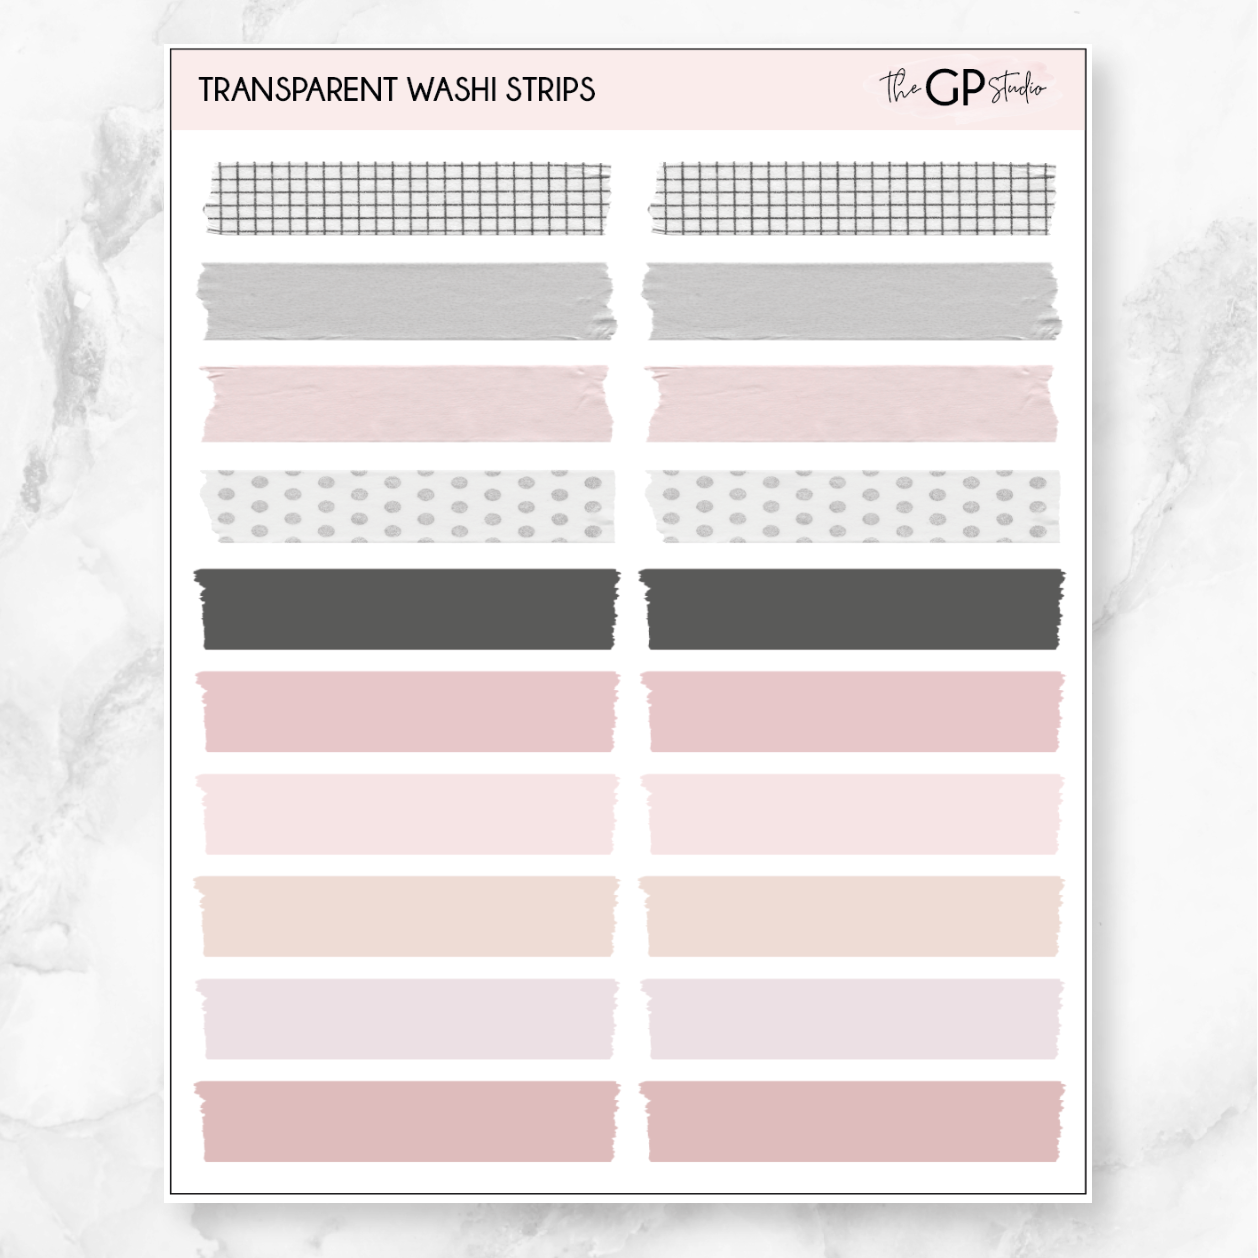 TRANSPARENT WASHI STRIPS - Clear Stickers-The GP Studio